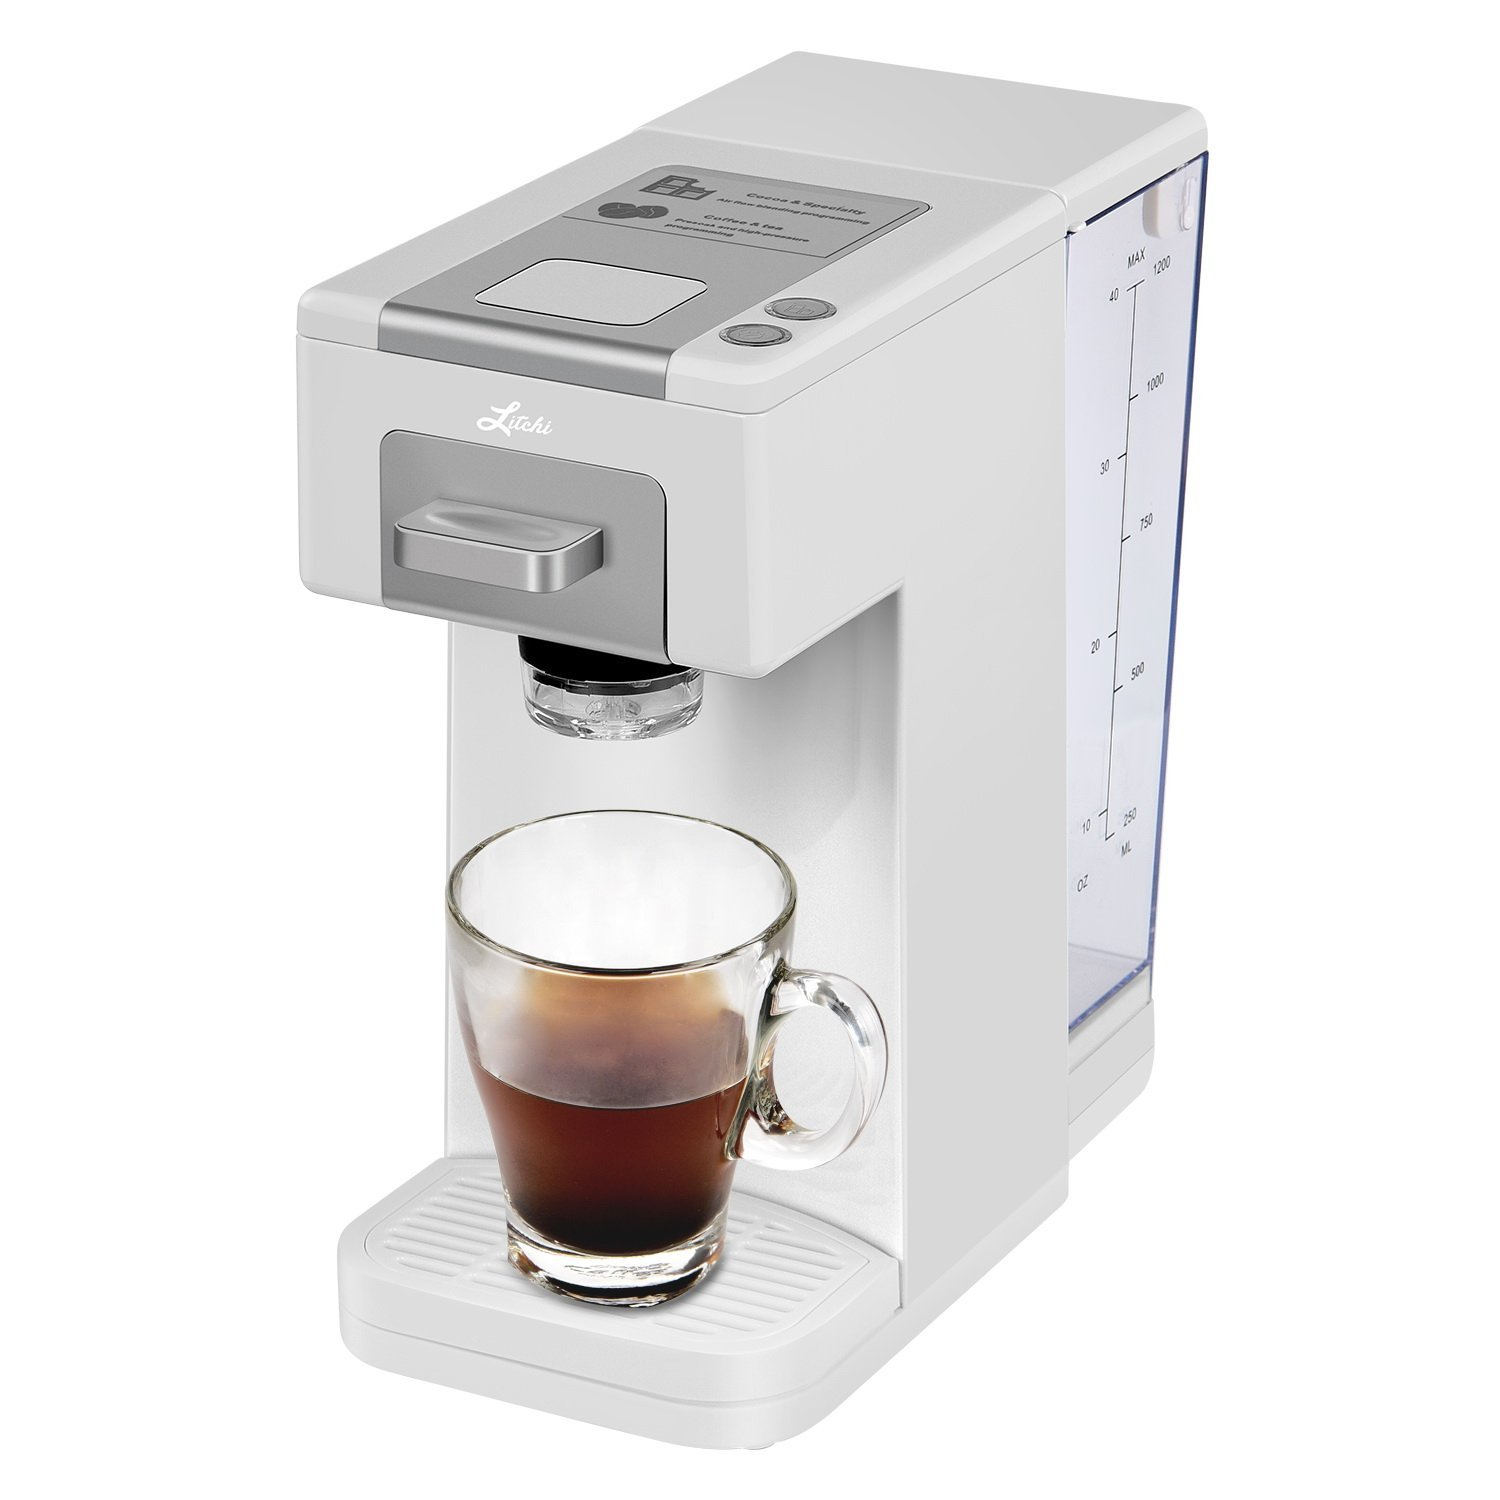 Litchi Single Serve Coffee Maker, Coffee Machine for Most Single Cup Pods Including K Cup Pods, Quick Brew Technology 4 Cup Coffee Maker, White by Litchi